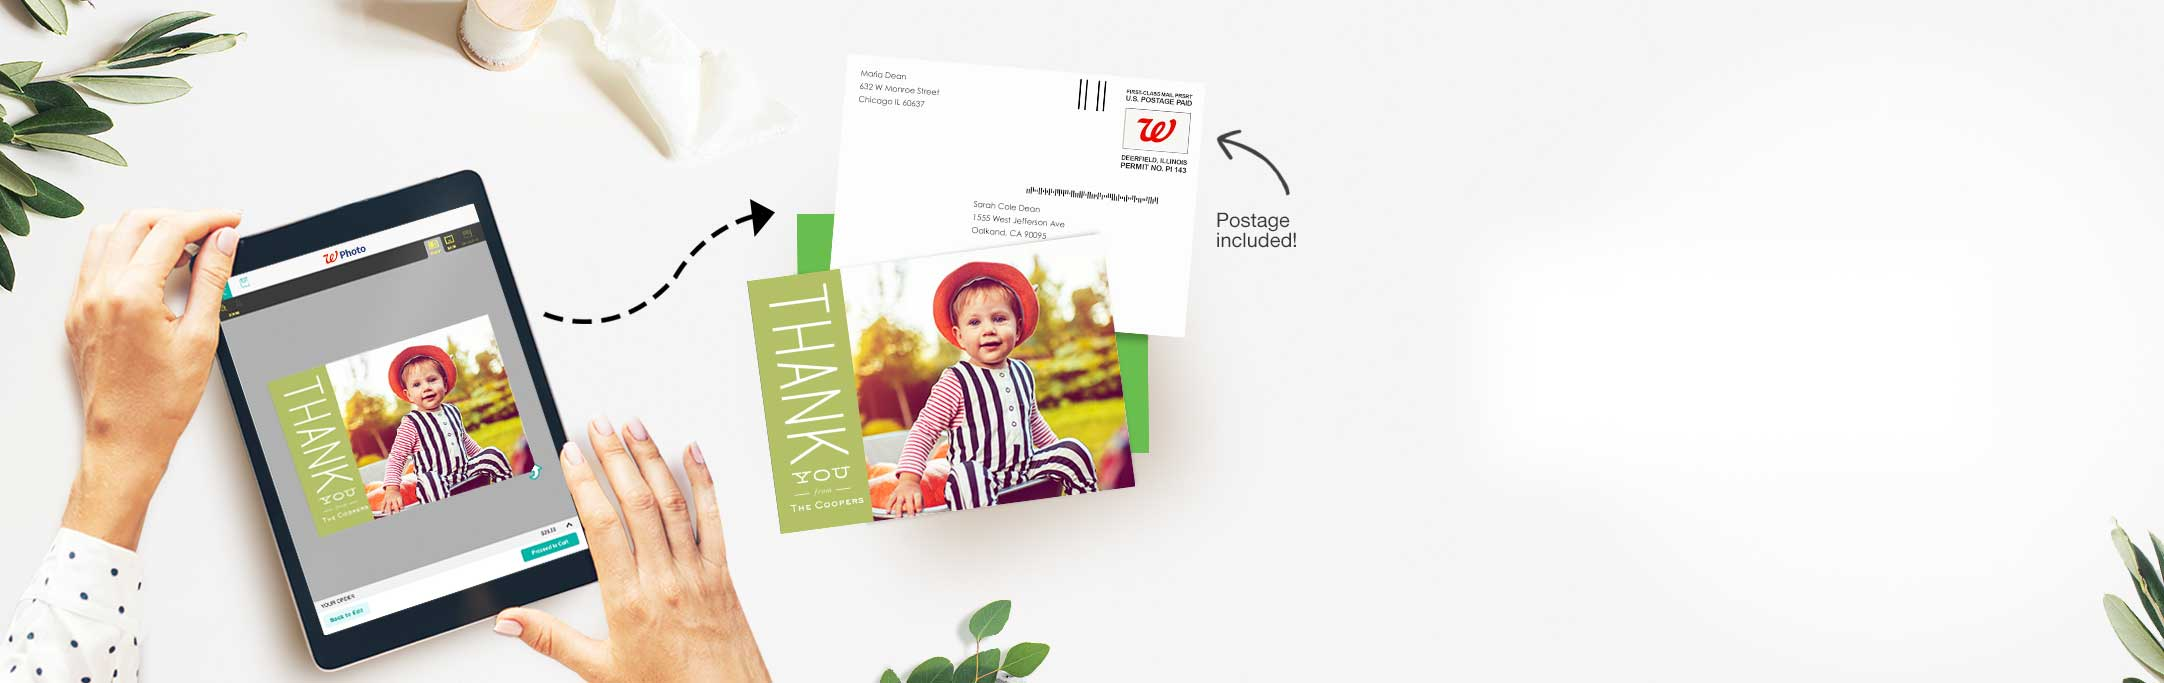 Just a few clicks and it's in the mail. Easily send gorgeous custom  cards—without leaving the house.